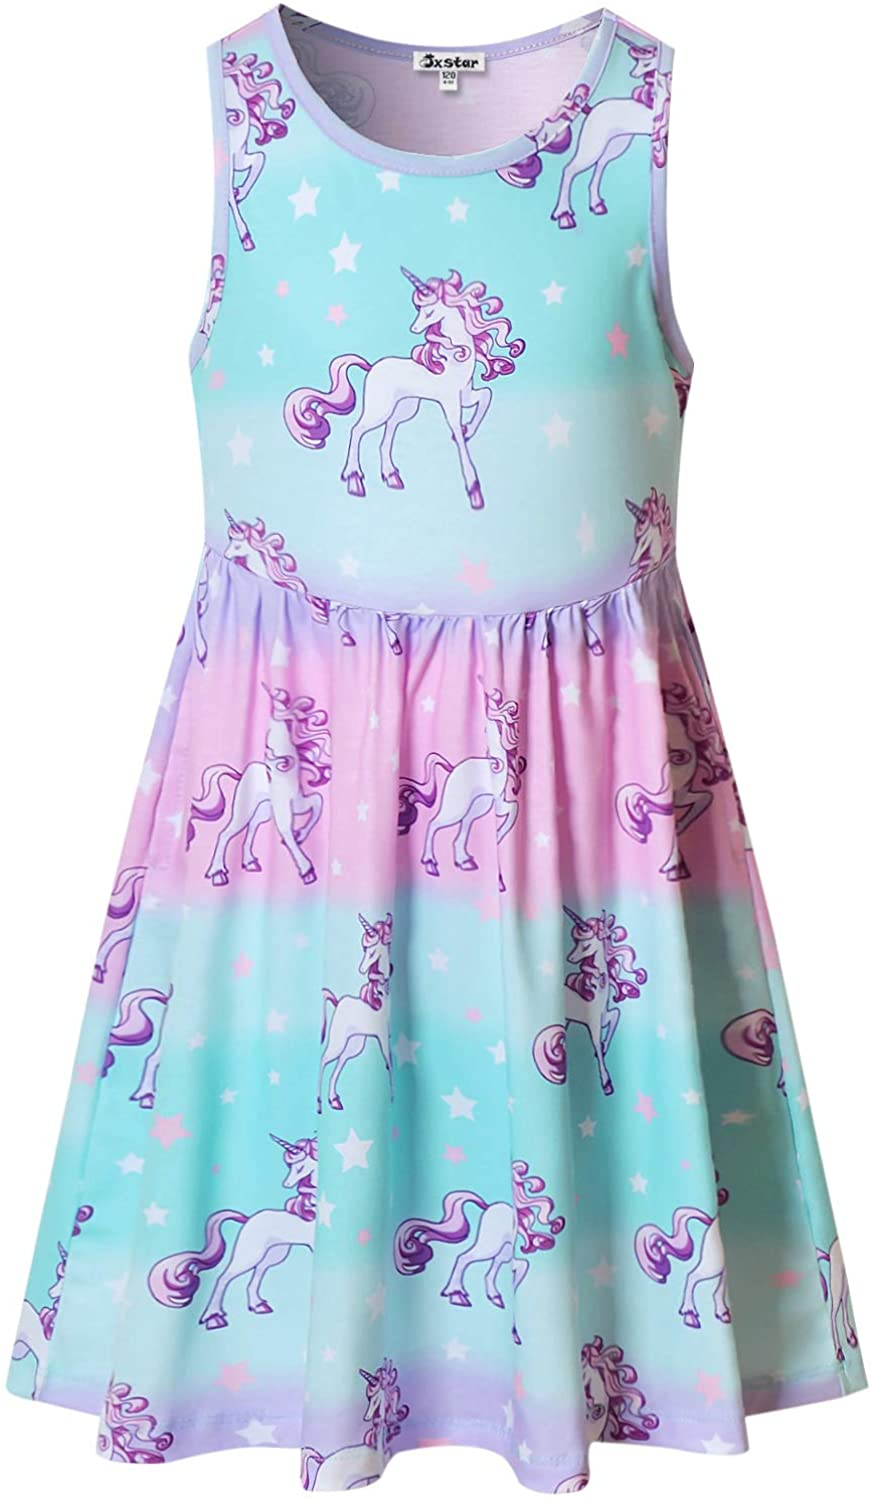 Girls Sleeveless Unicorn Mermaid Dresses Hawaiian Clothes Summer Manufacturer direct Special price delivery